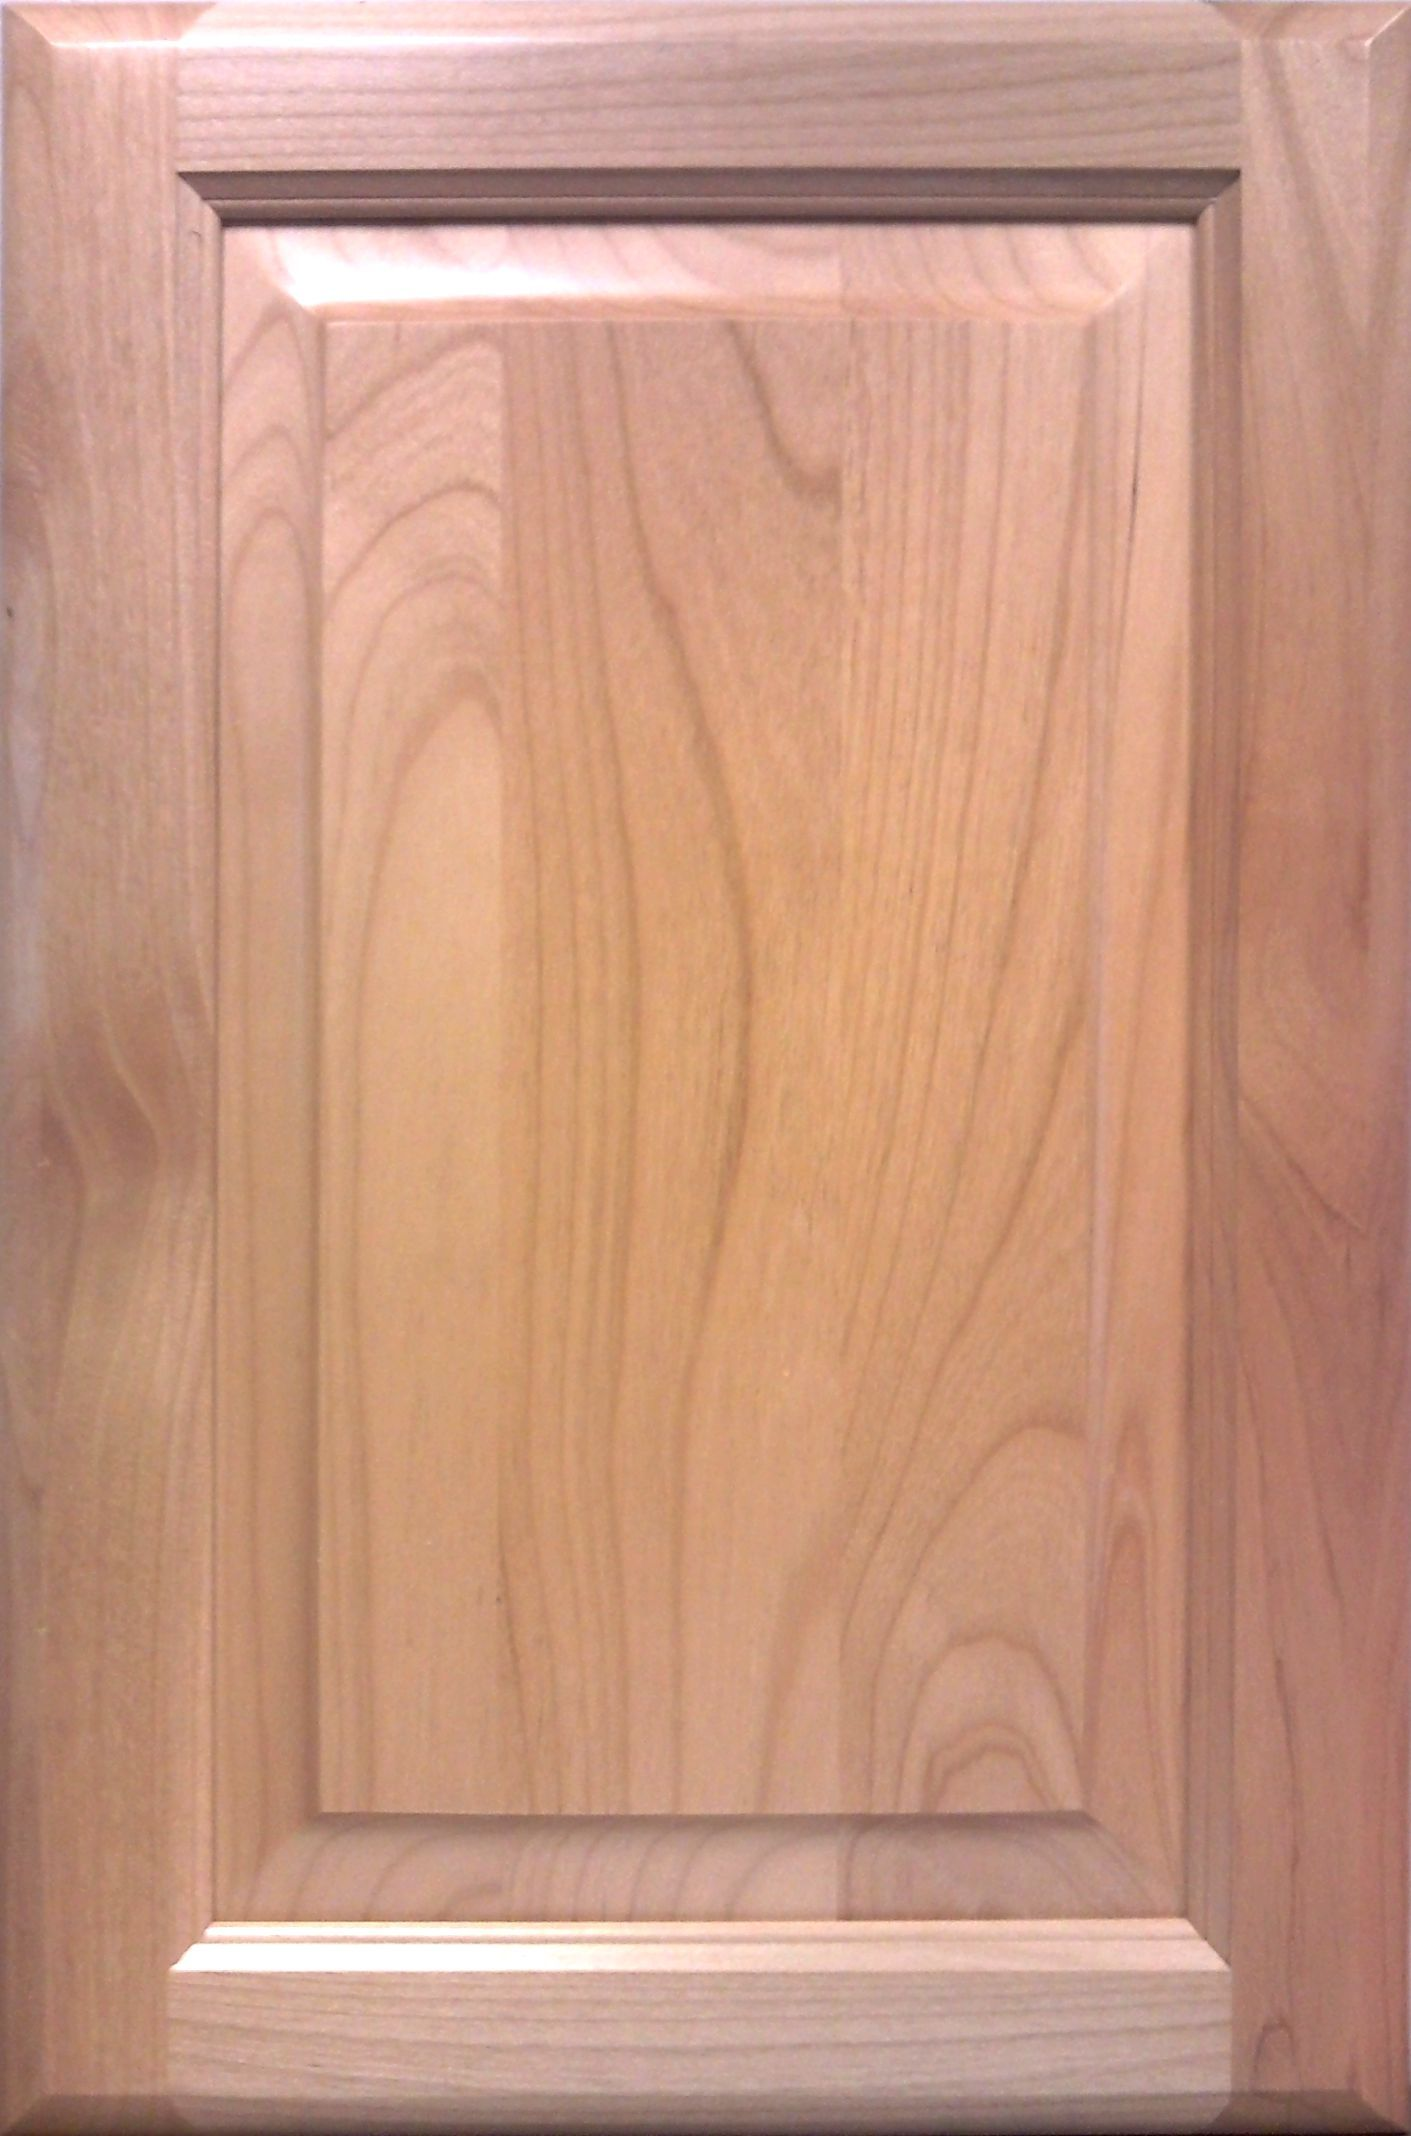 Cabinet door style images pine country raised panel cabinet door square style